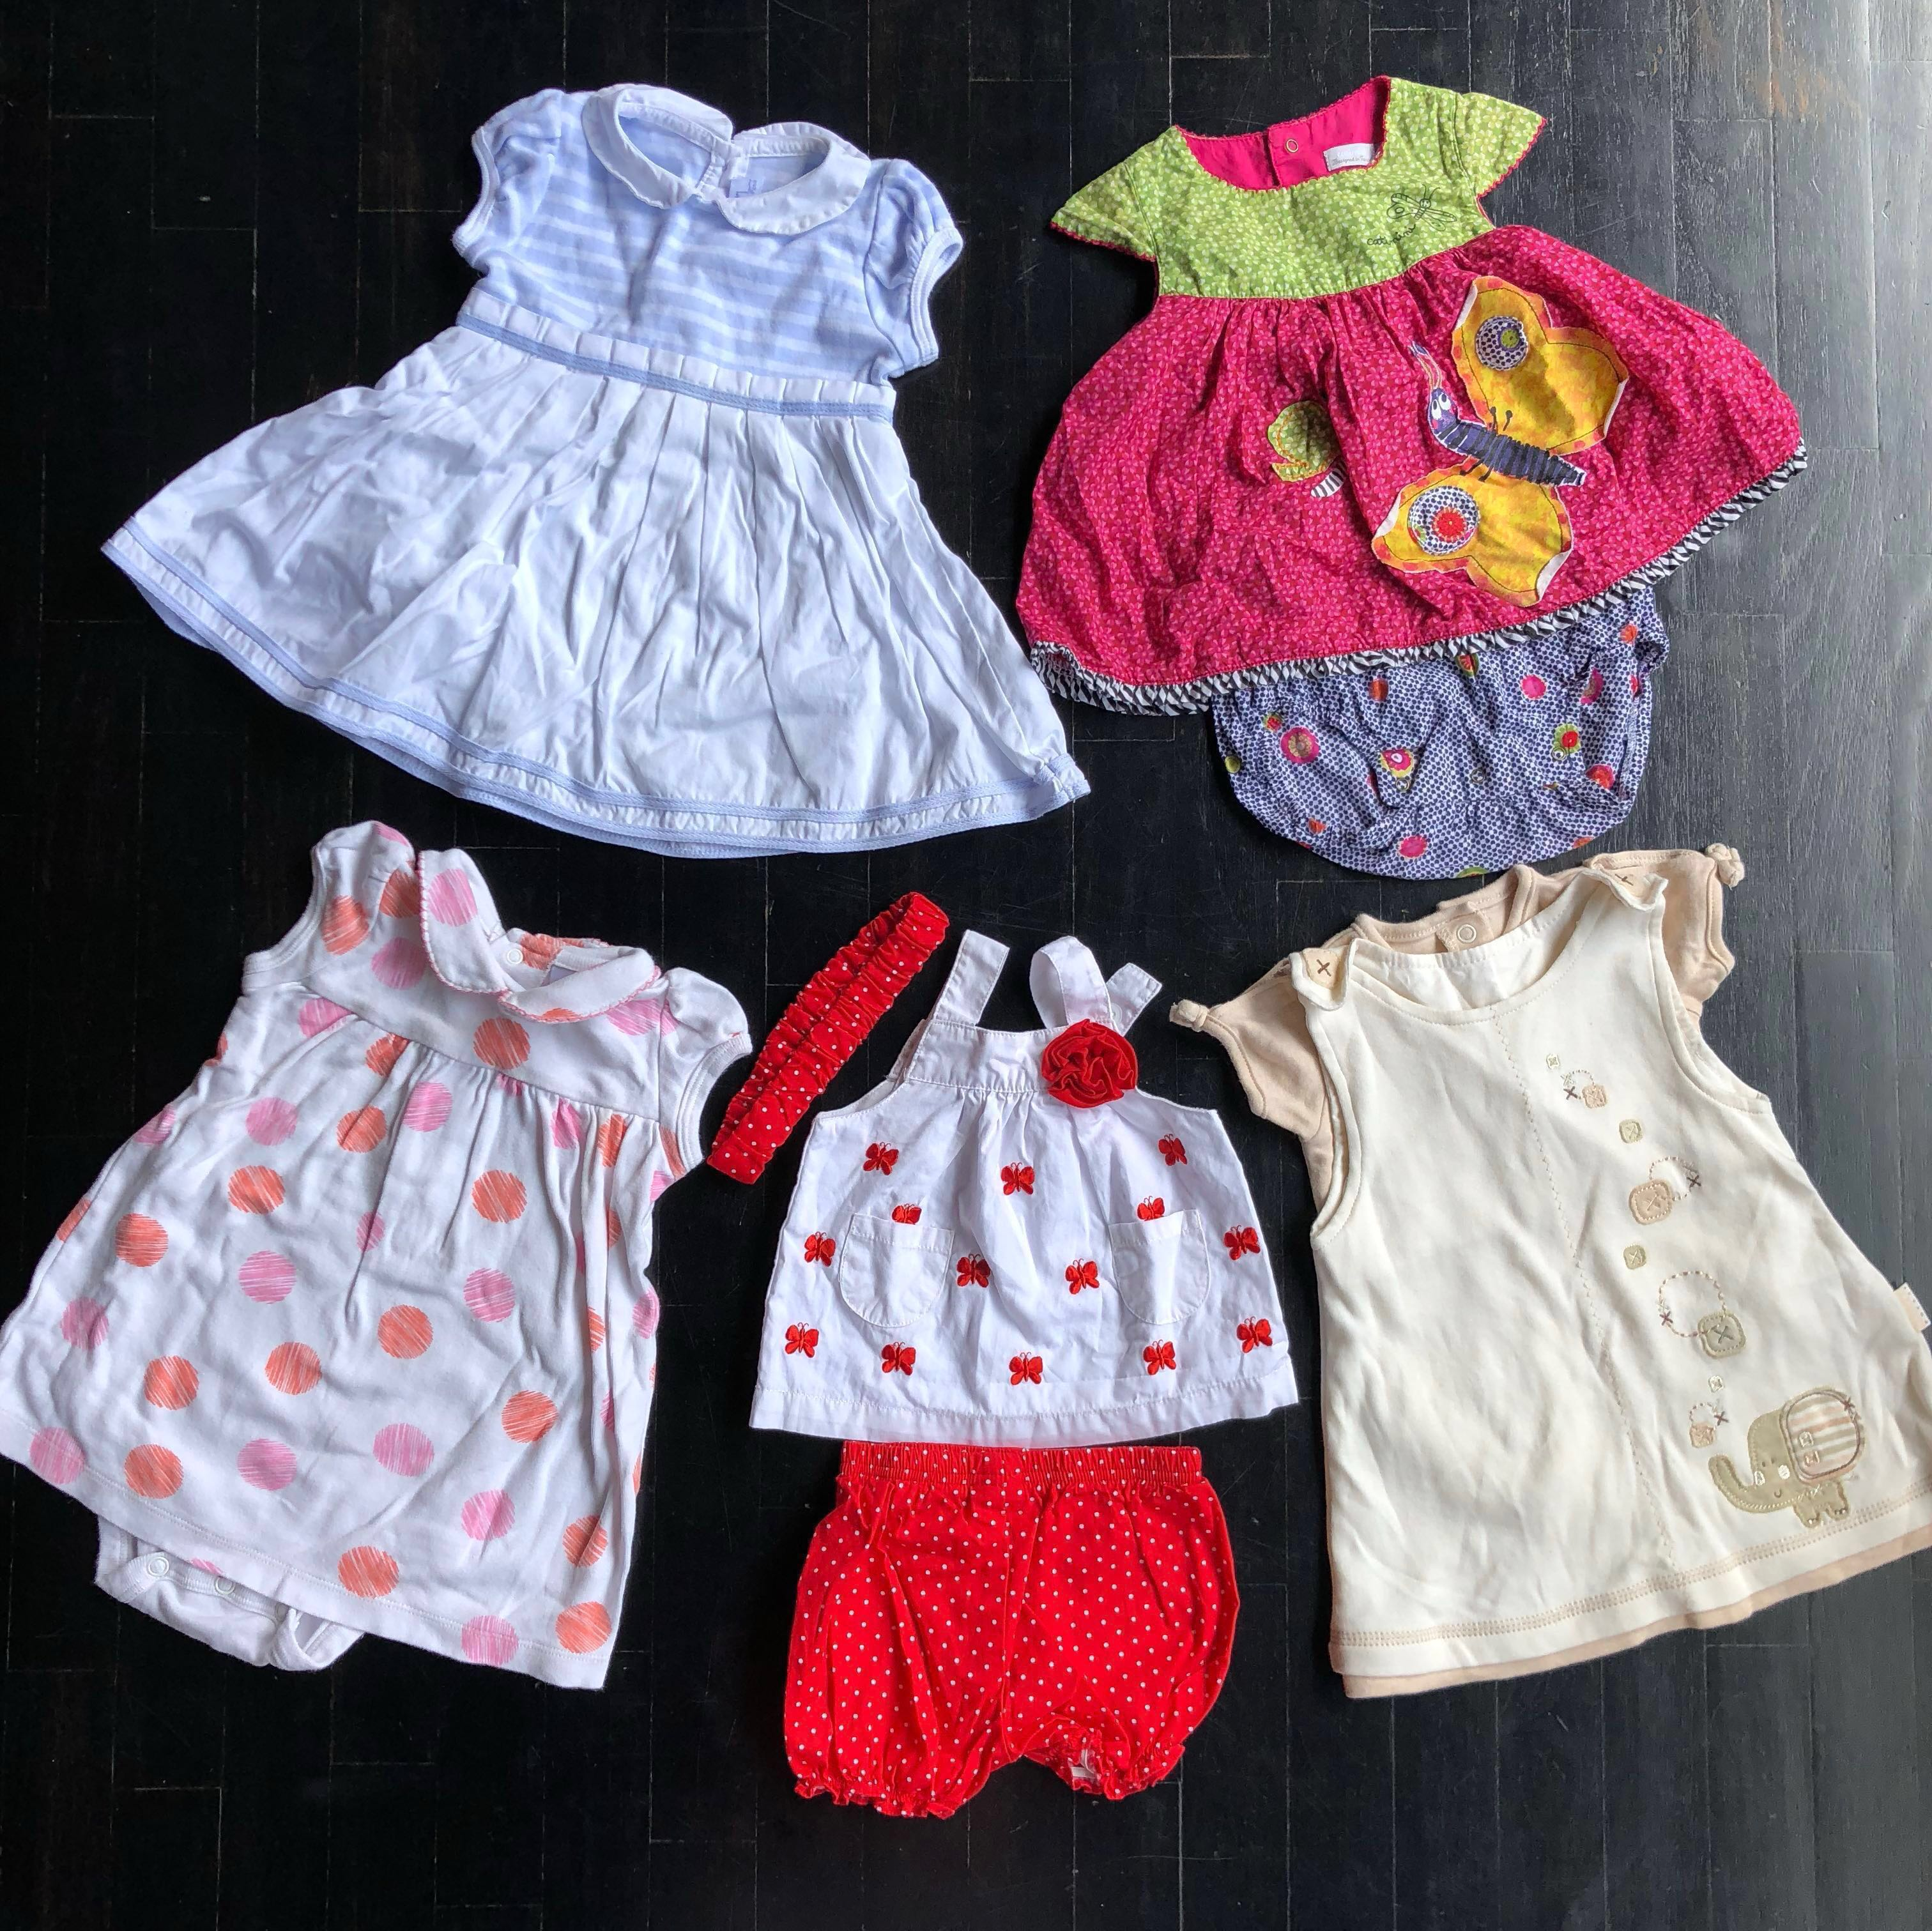 Baby Baby Girl Outfits 0-3 Months